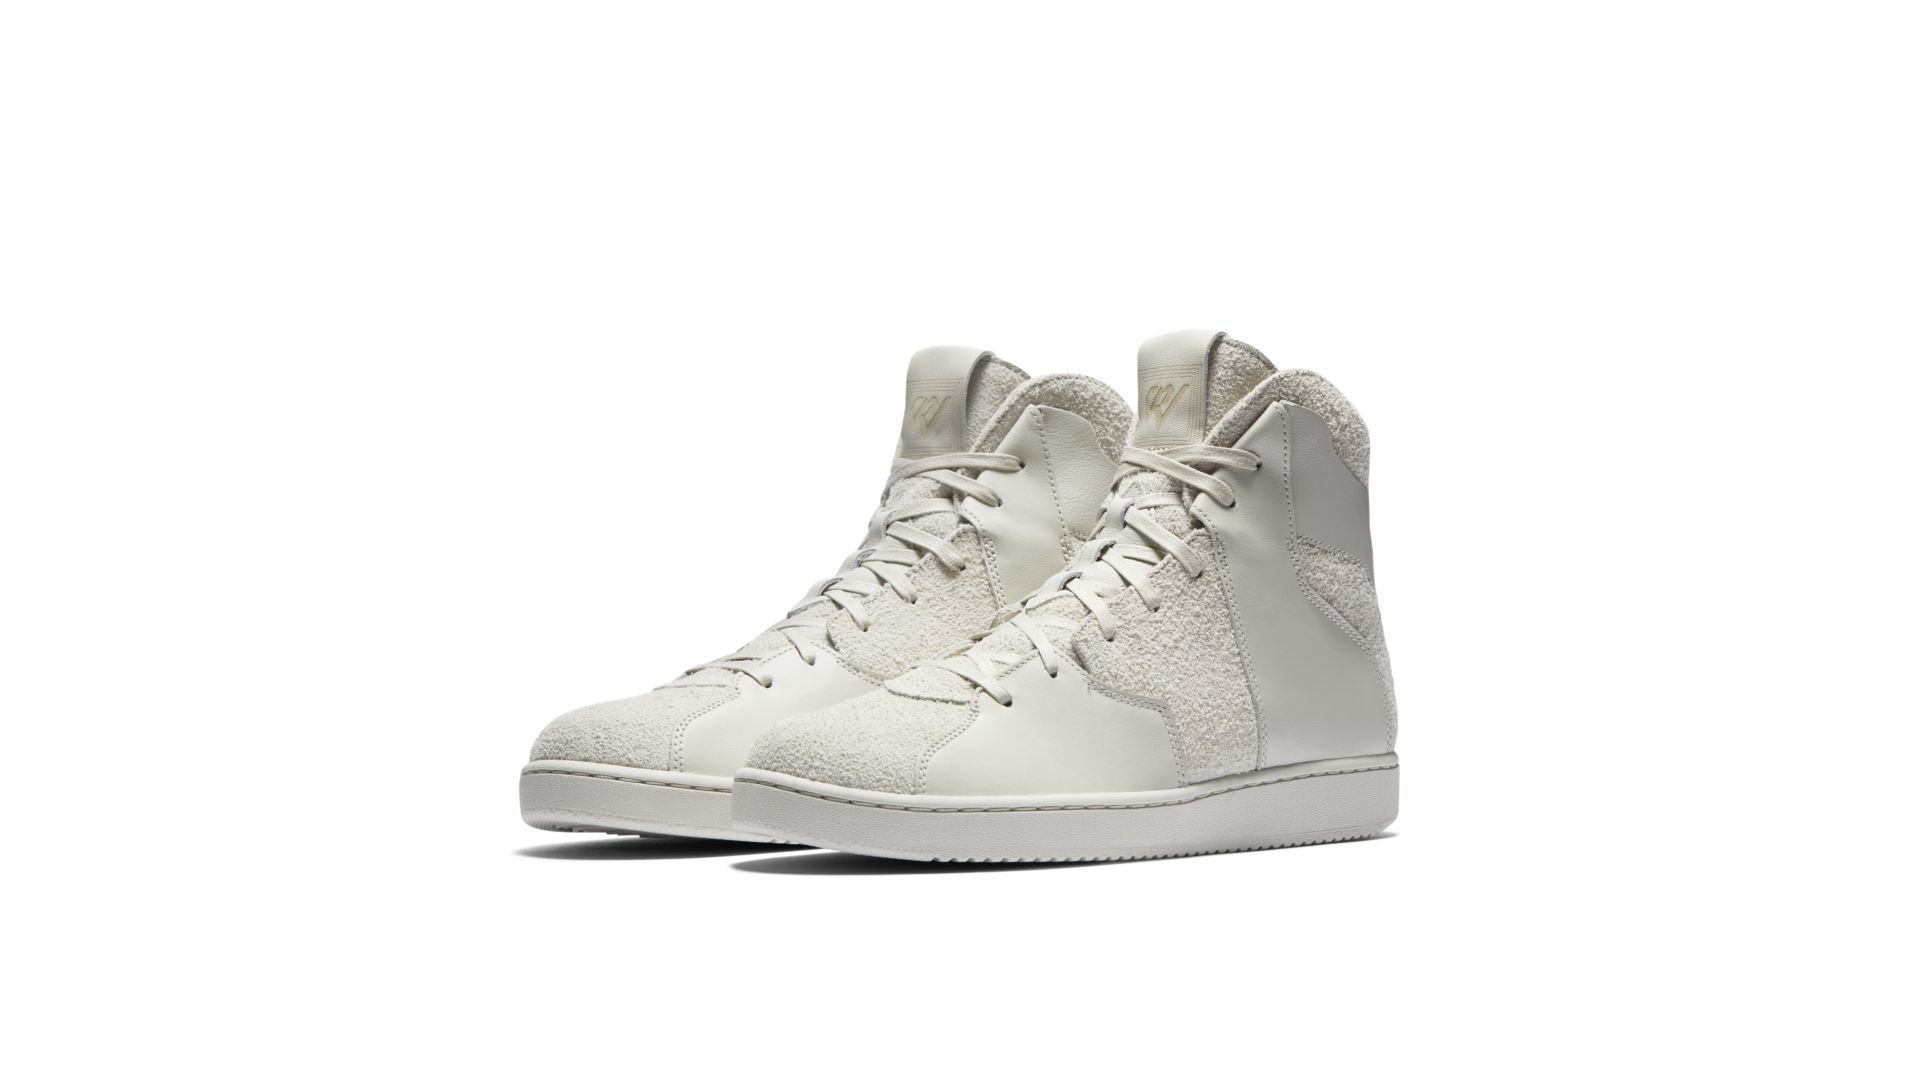 Jordan Westbrook 0.2 Light Bone (854563-002)